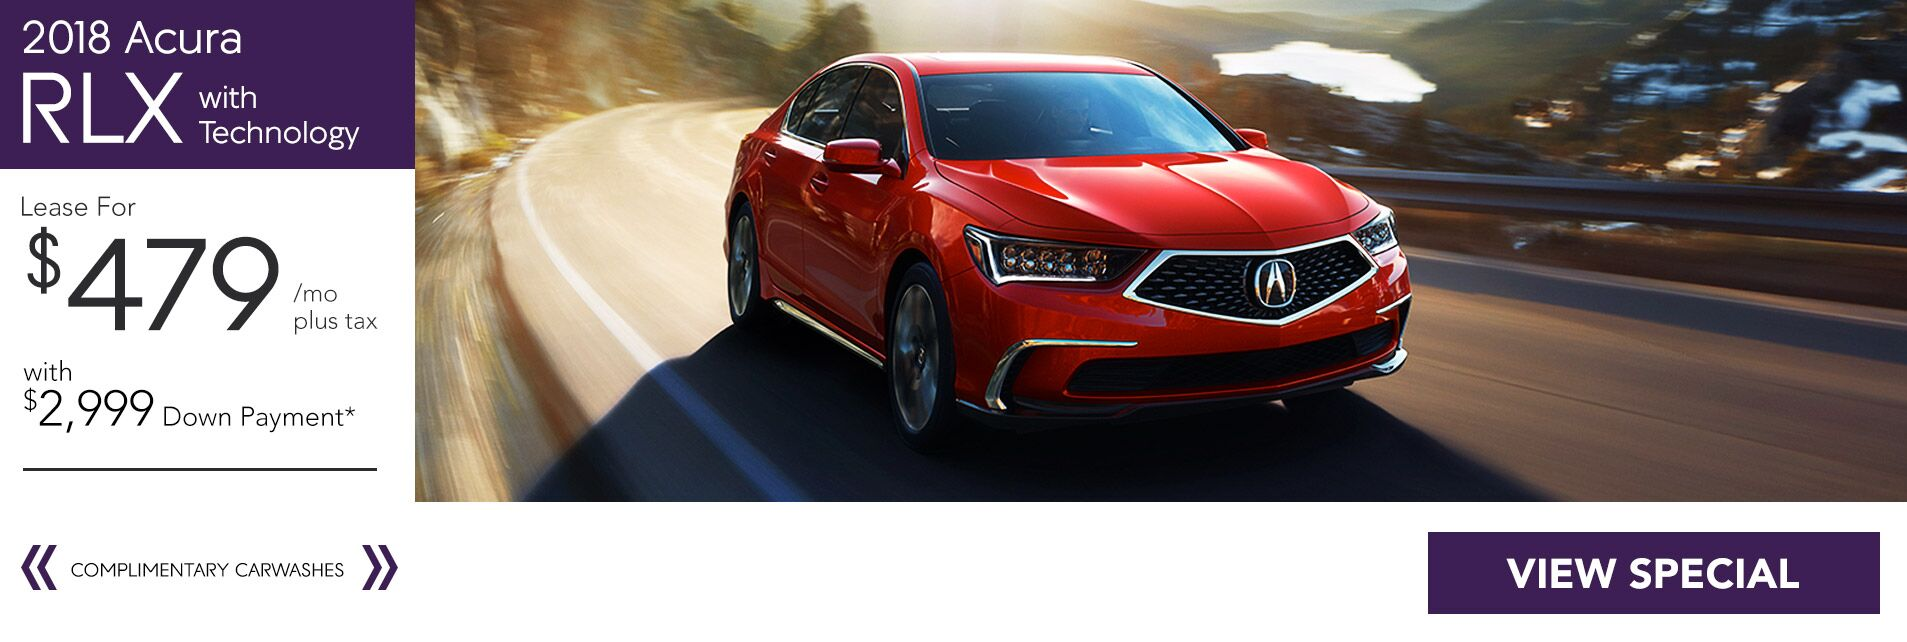 Lease a 2018 Acura RLX Tech for $479/36Mo. with $2,999 Down